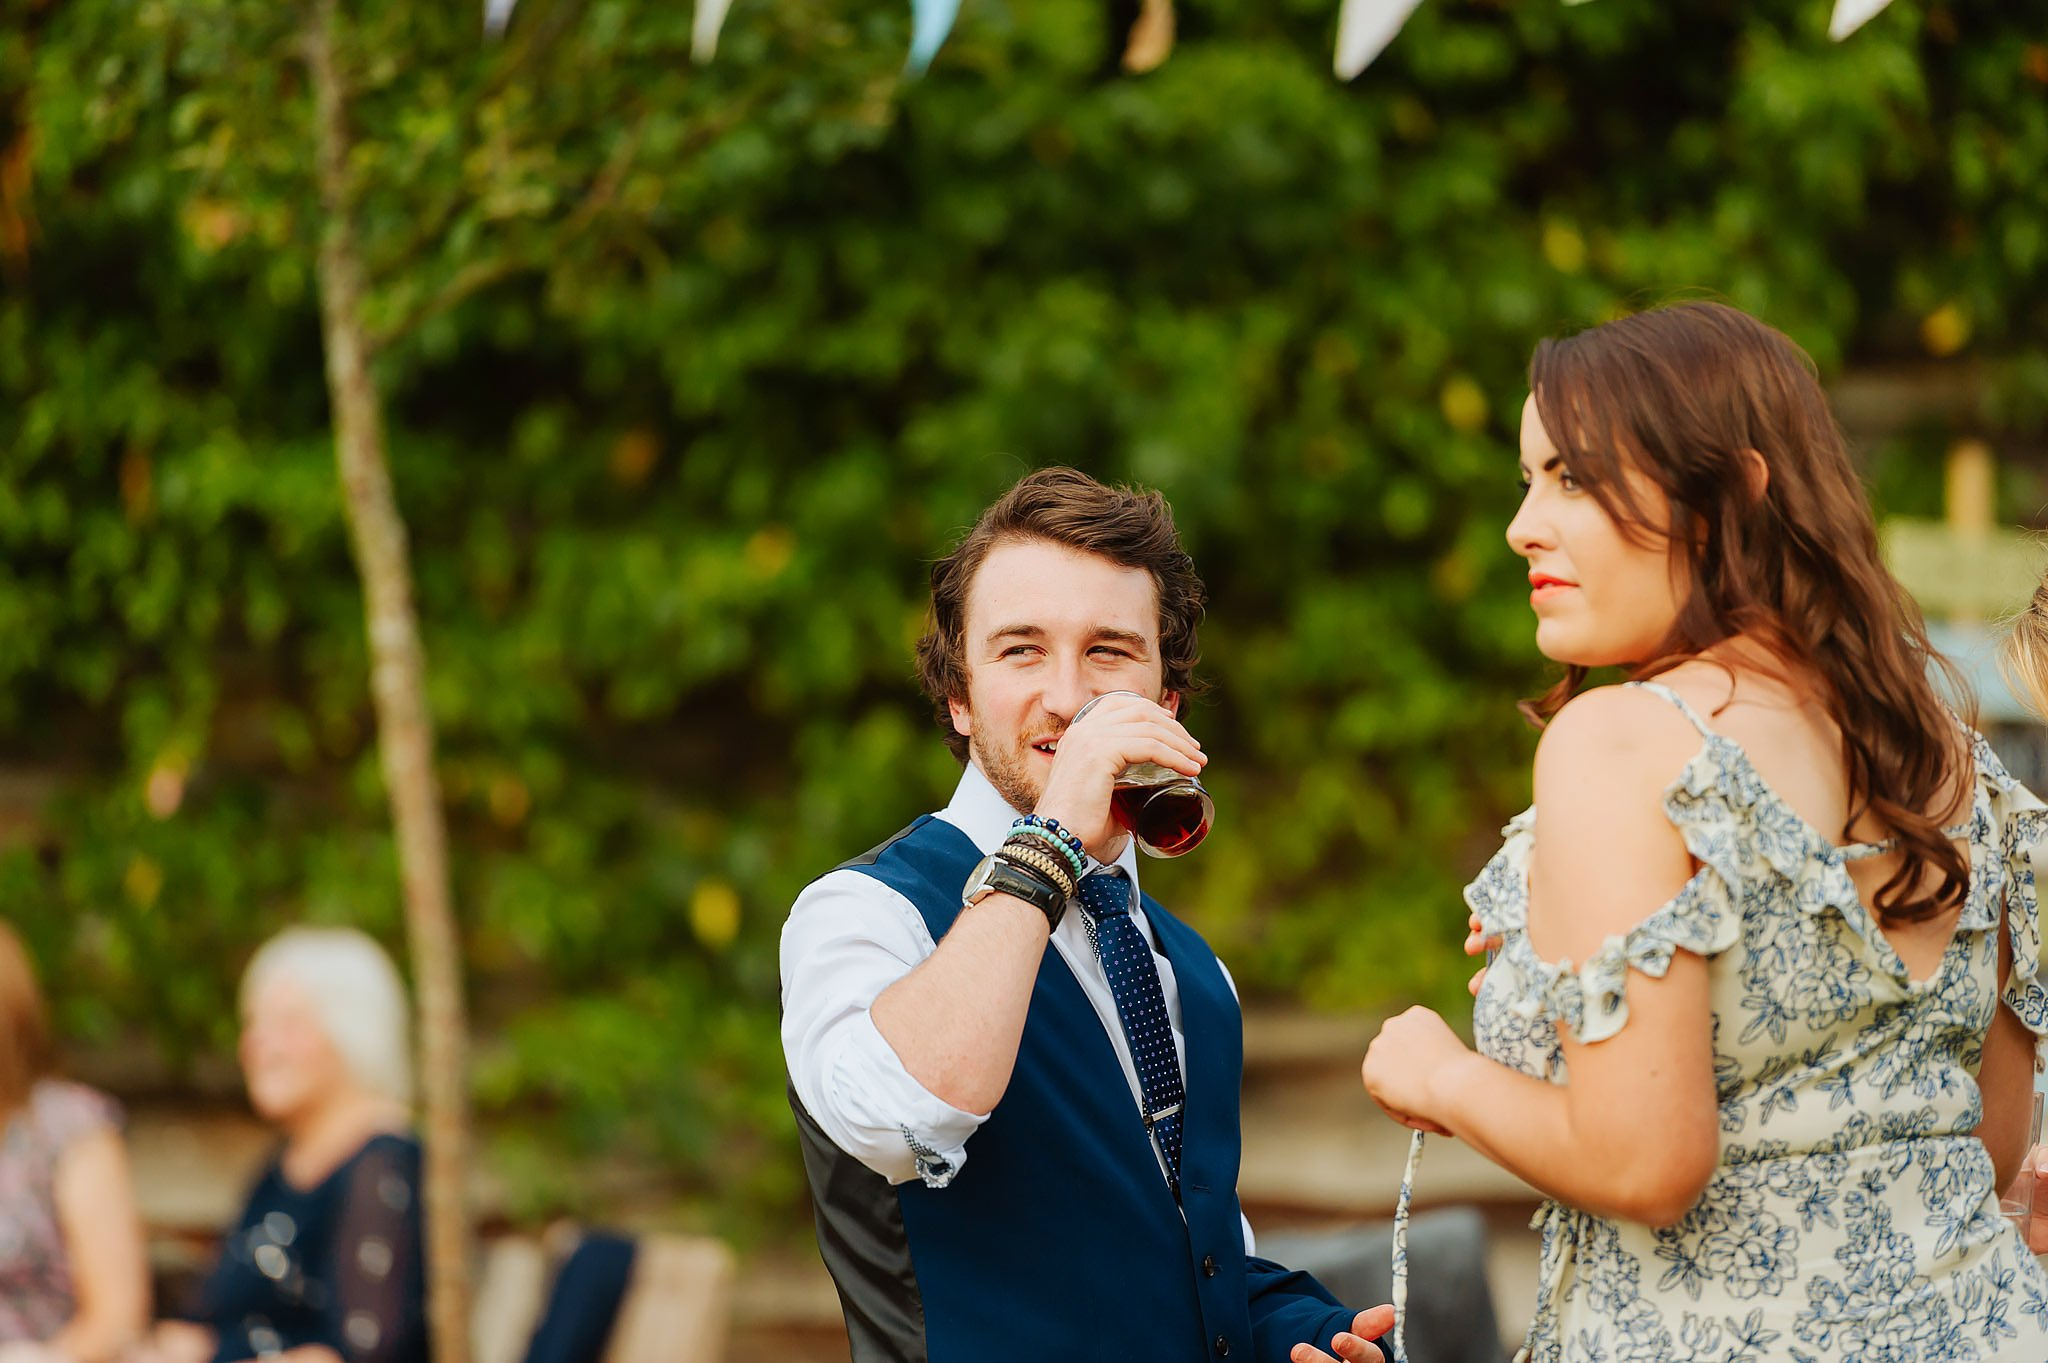 Wedding photography at Hellens Manor in Herefordshire, West Midlands | Shelley + Ian 100